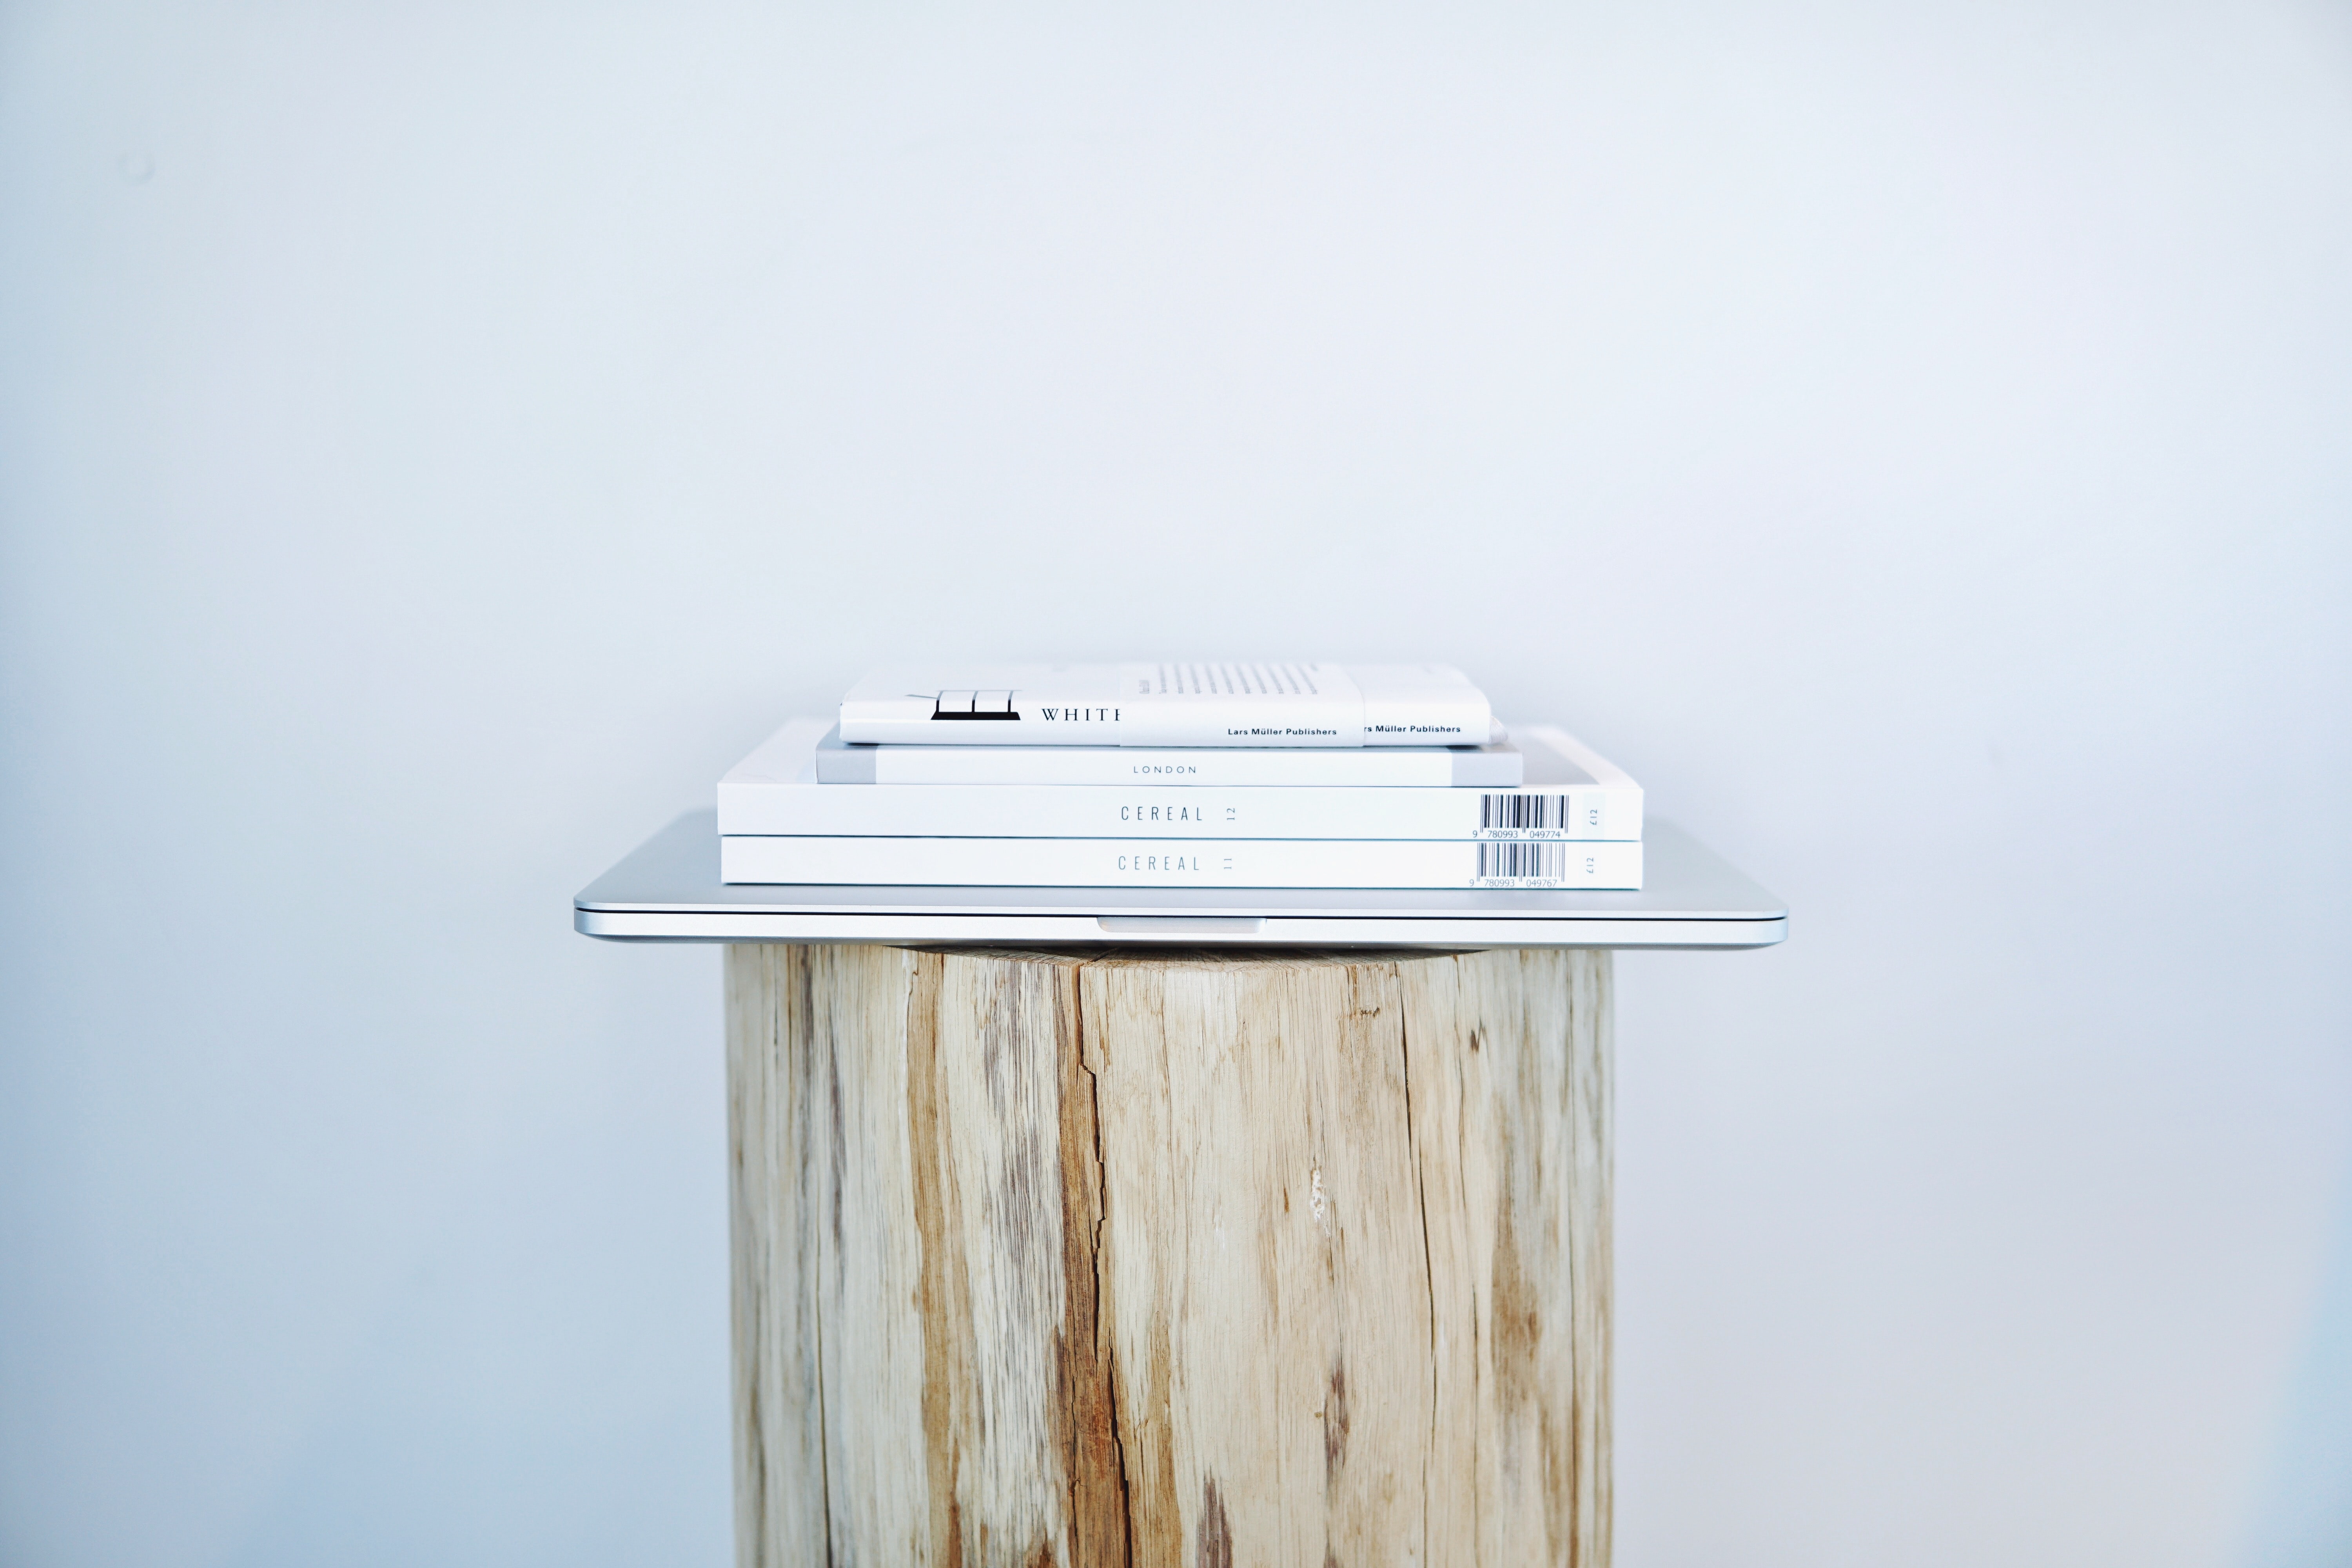 Four books with white covers on top of a MacBook on a log